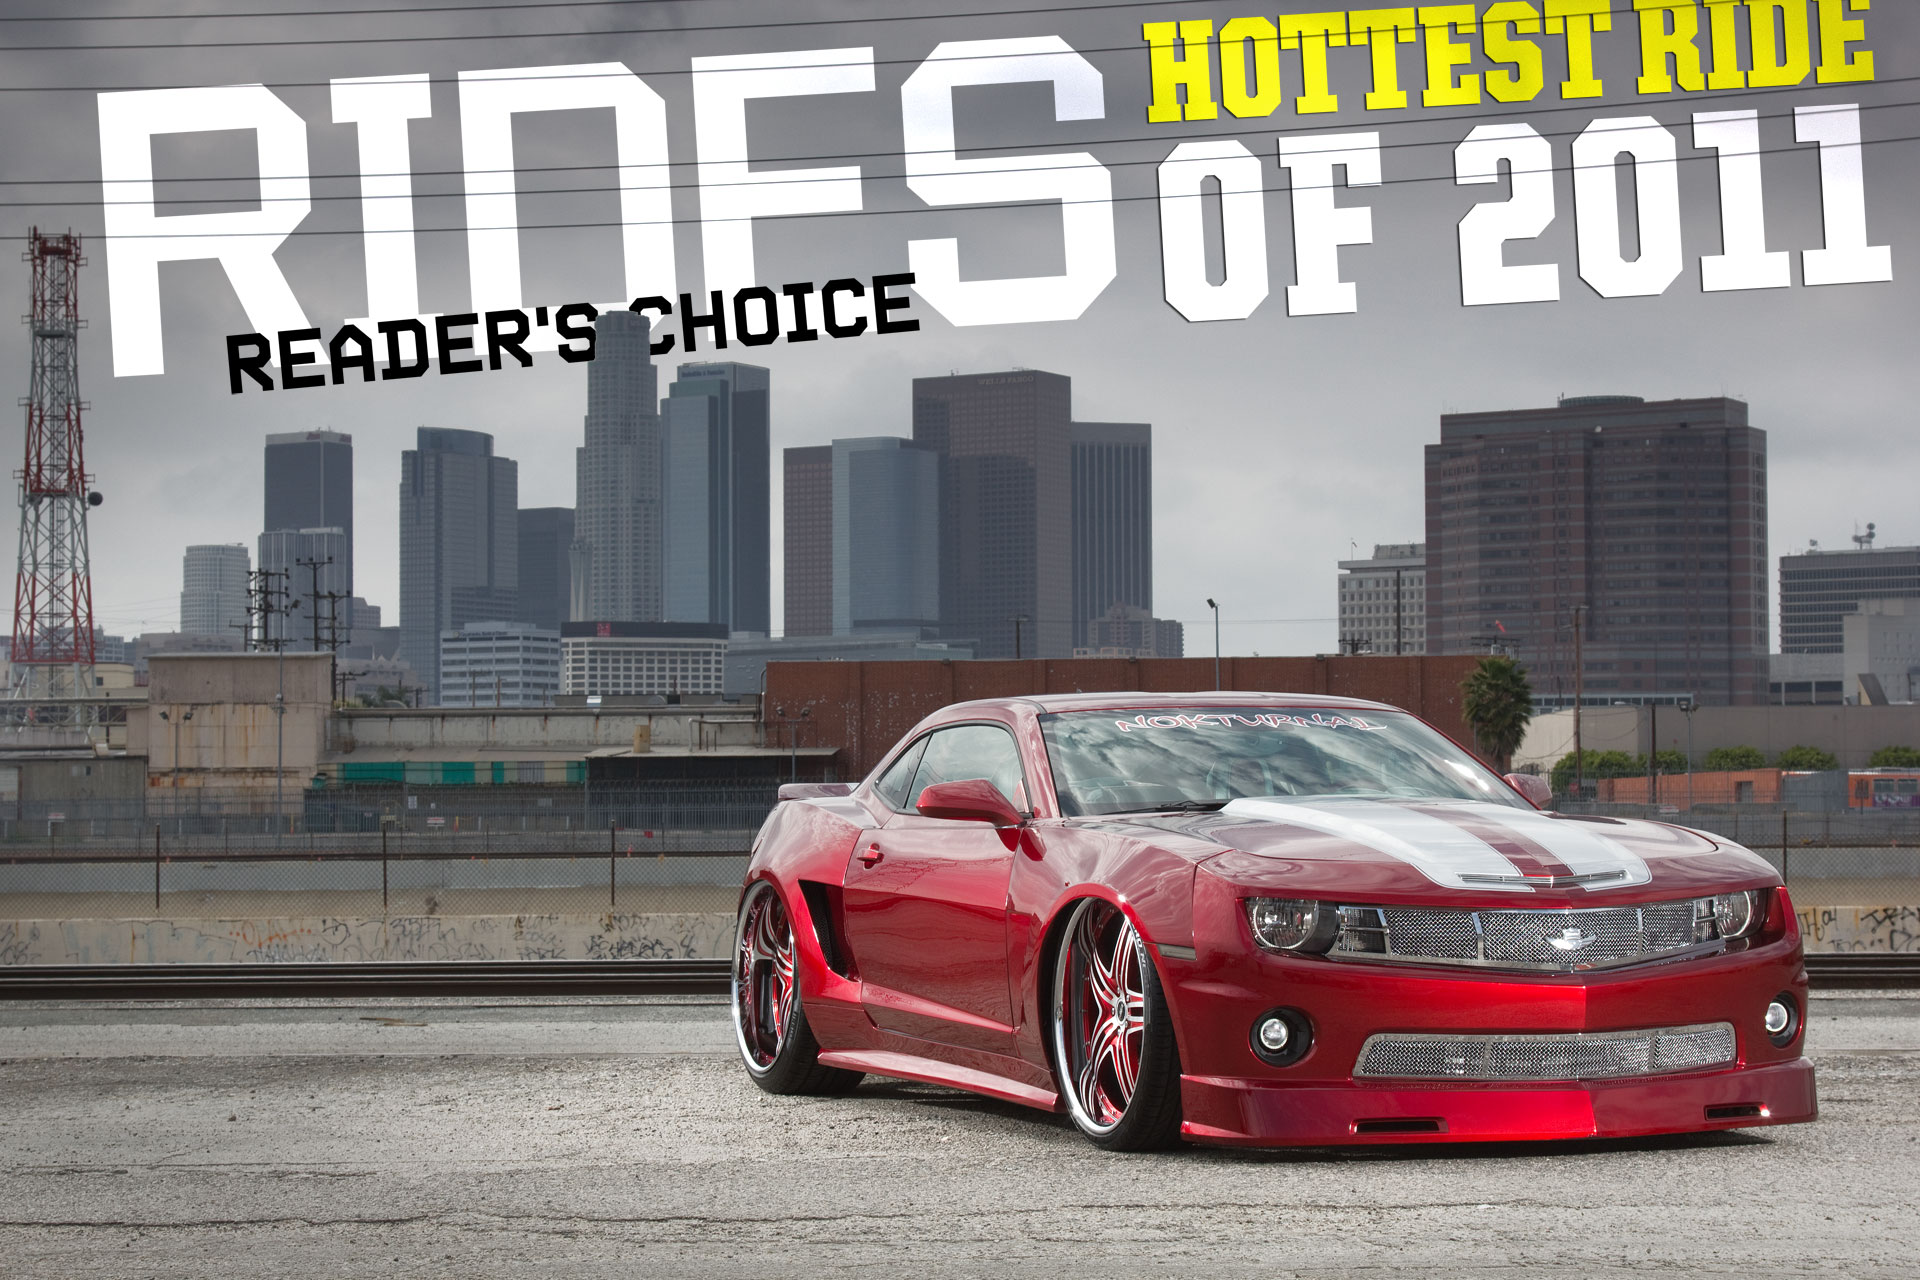 rides cars hottest ride of 2011 chito camaro chevy chevrolet widebody slammed bagged supercharged